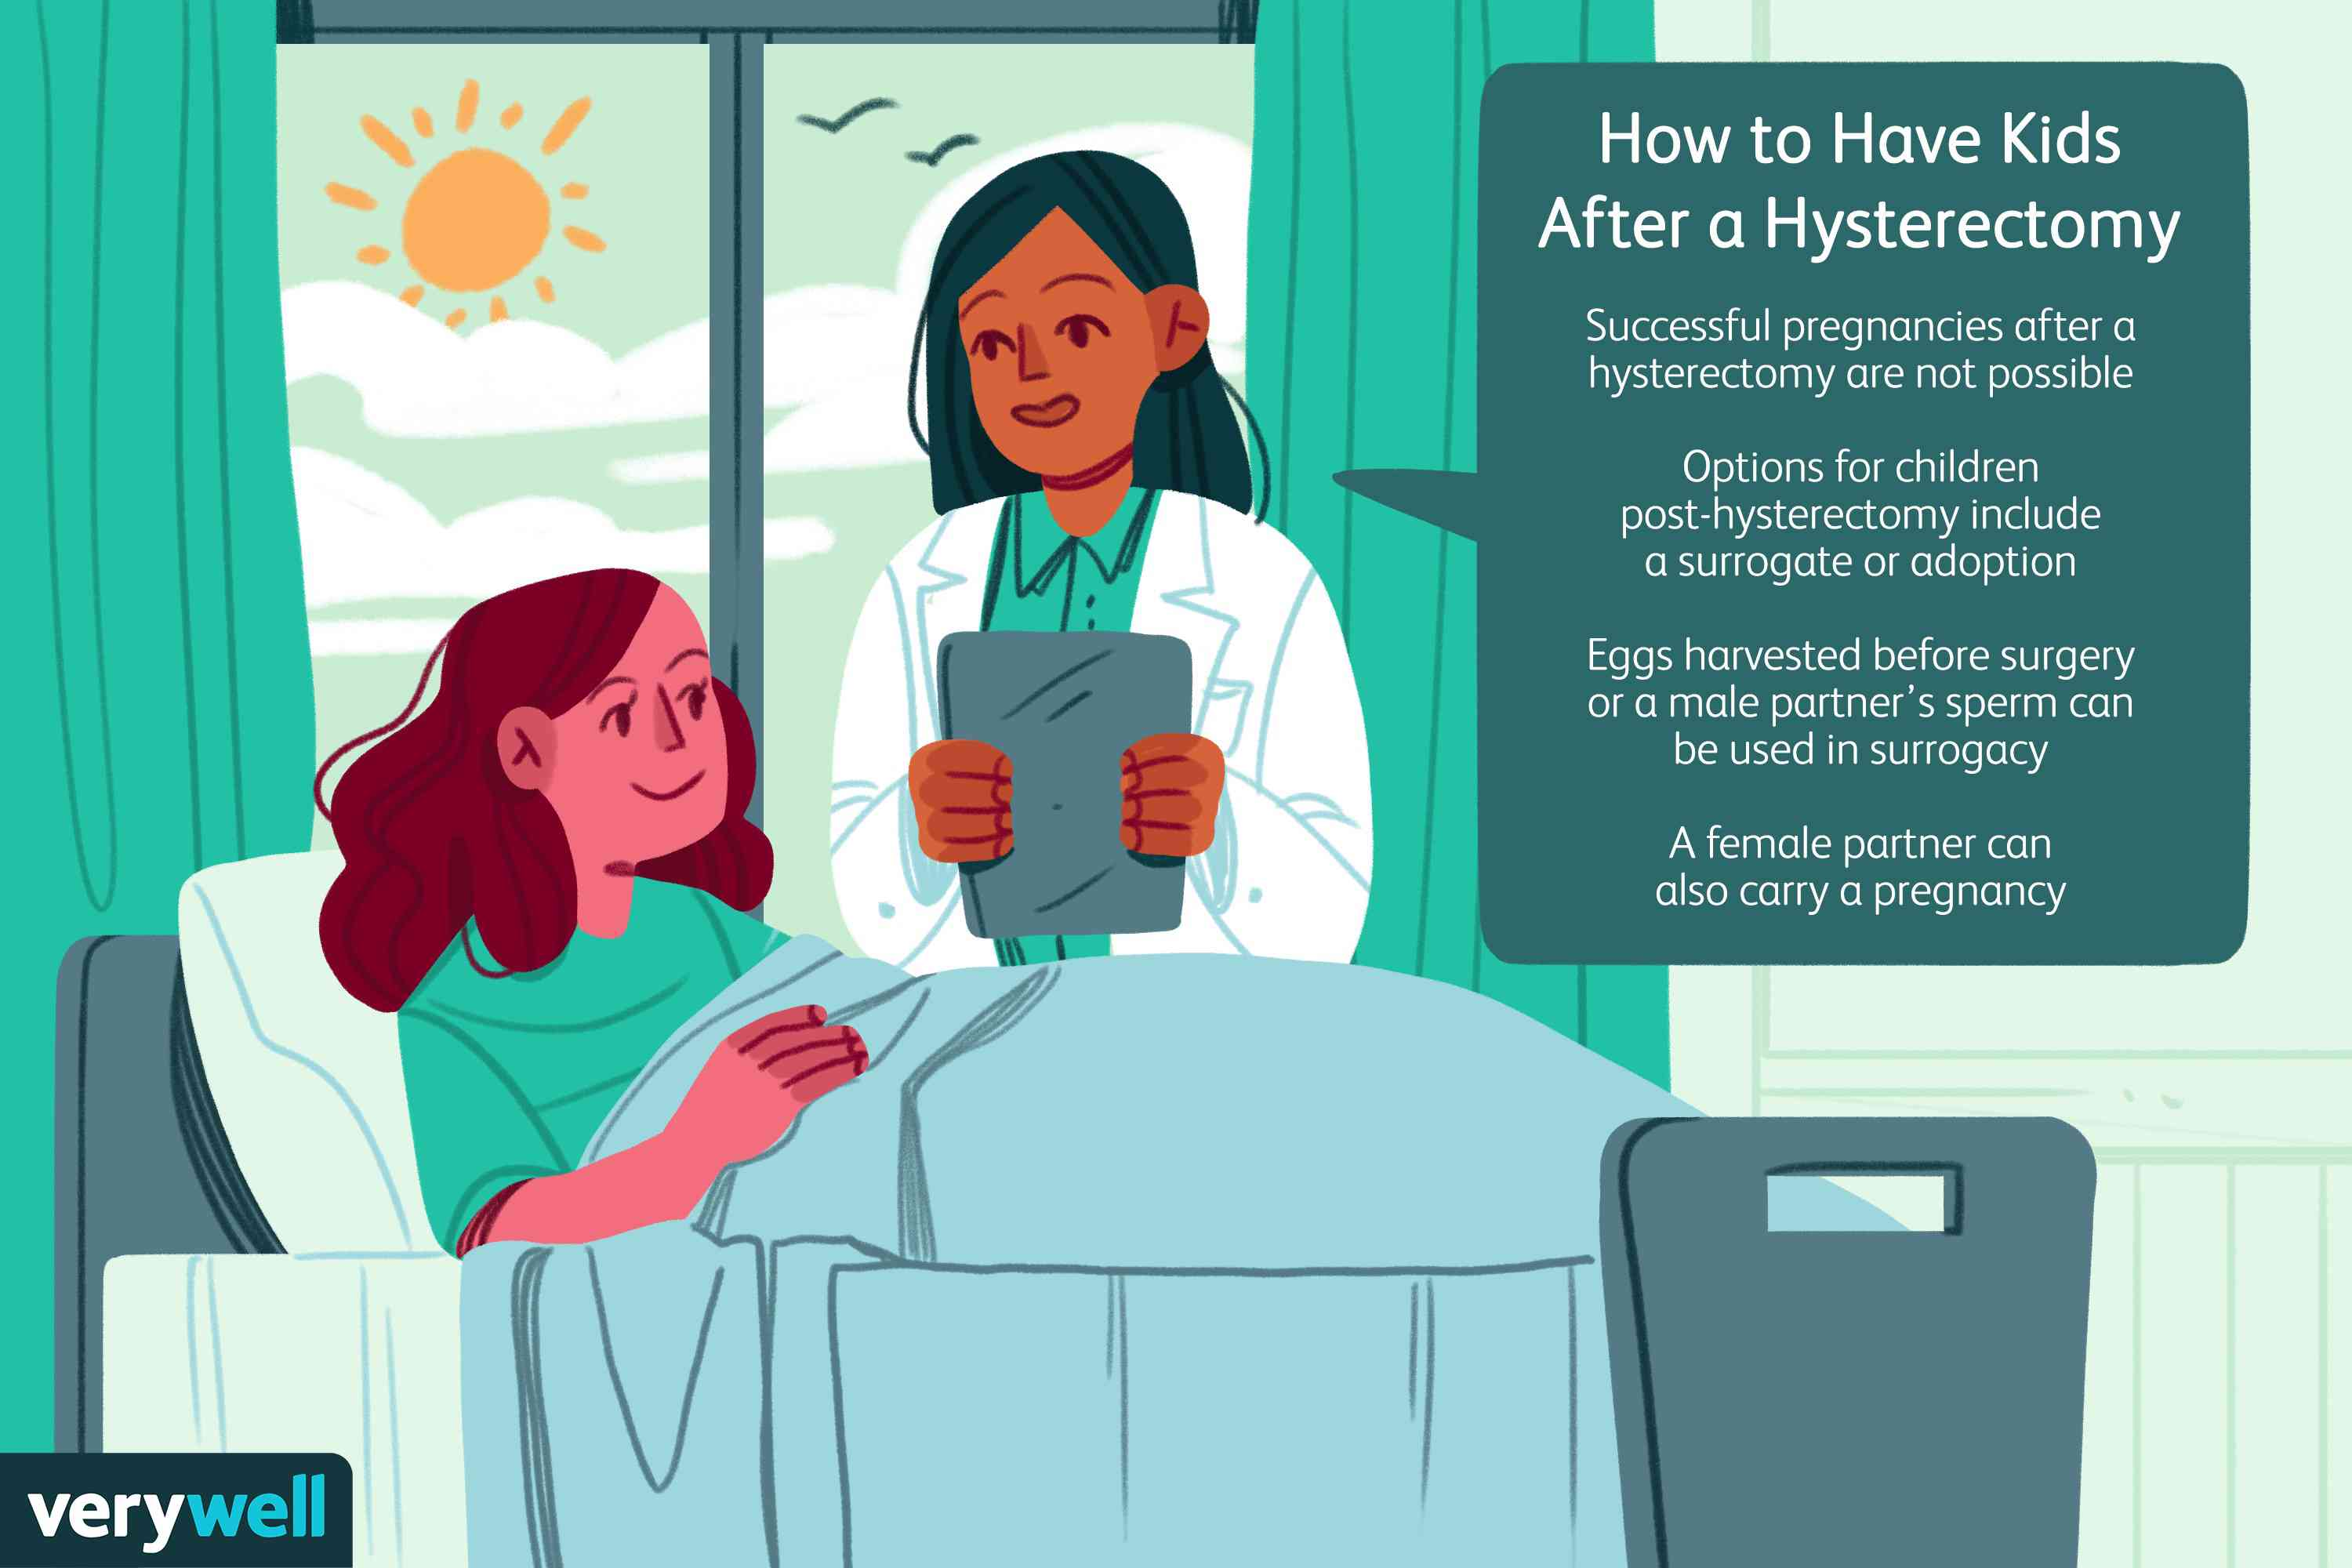 How to Have Kids After a Hysterectomy